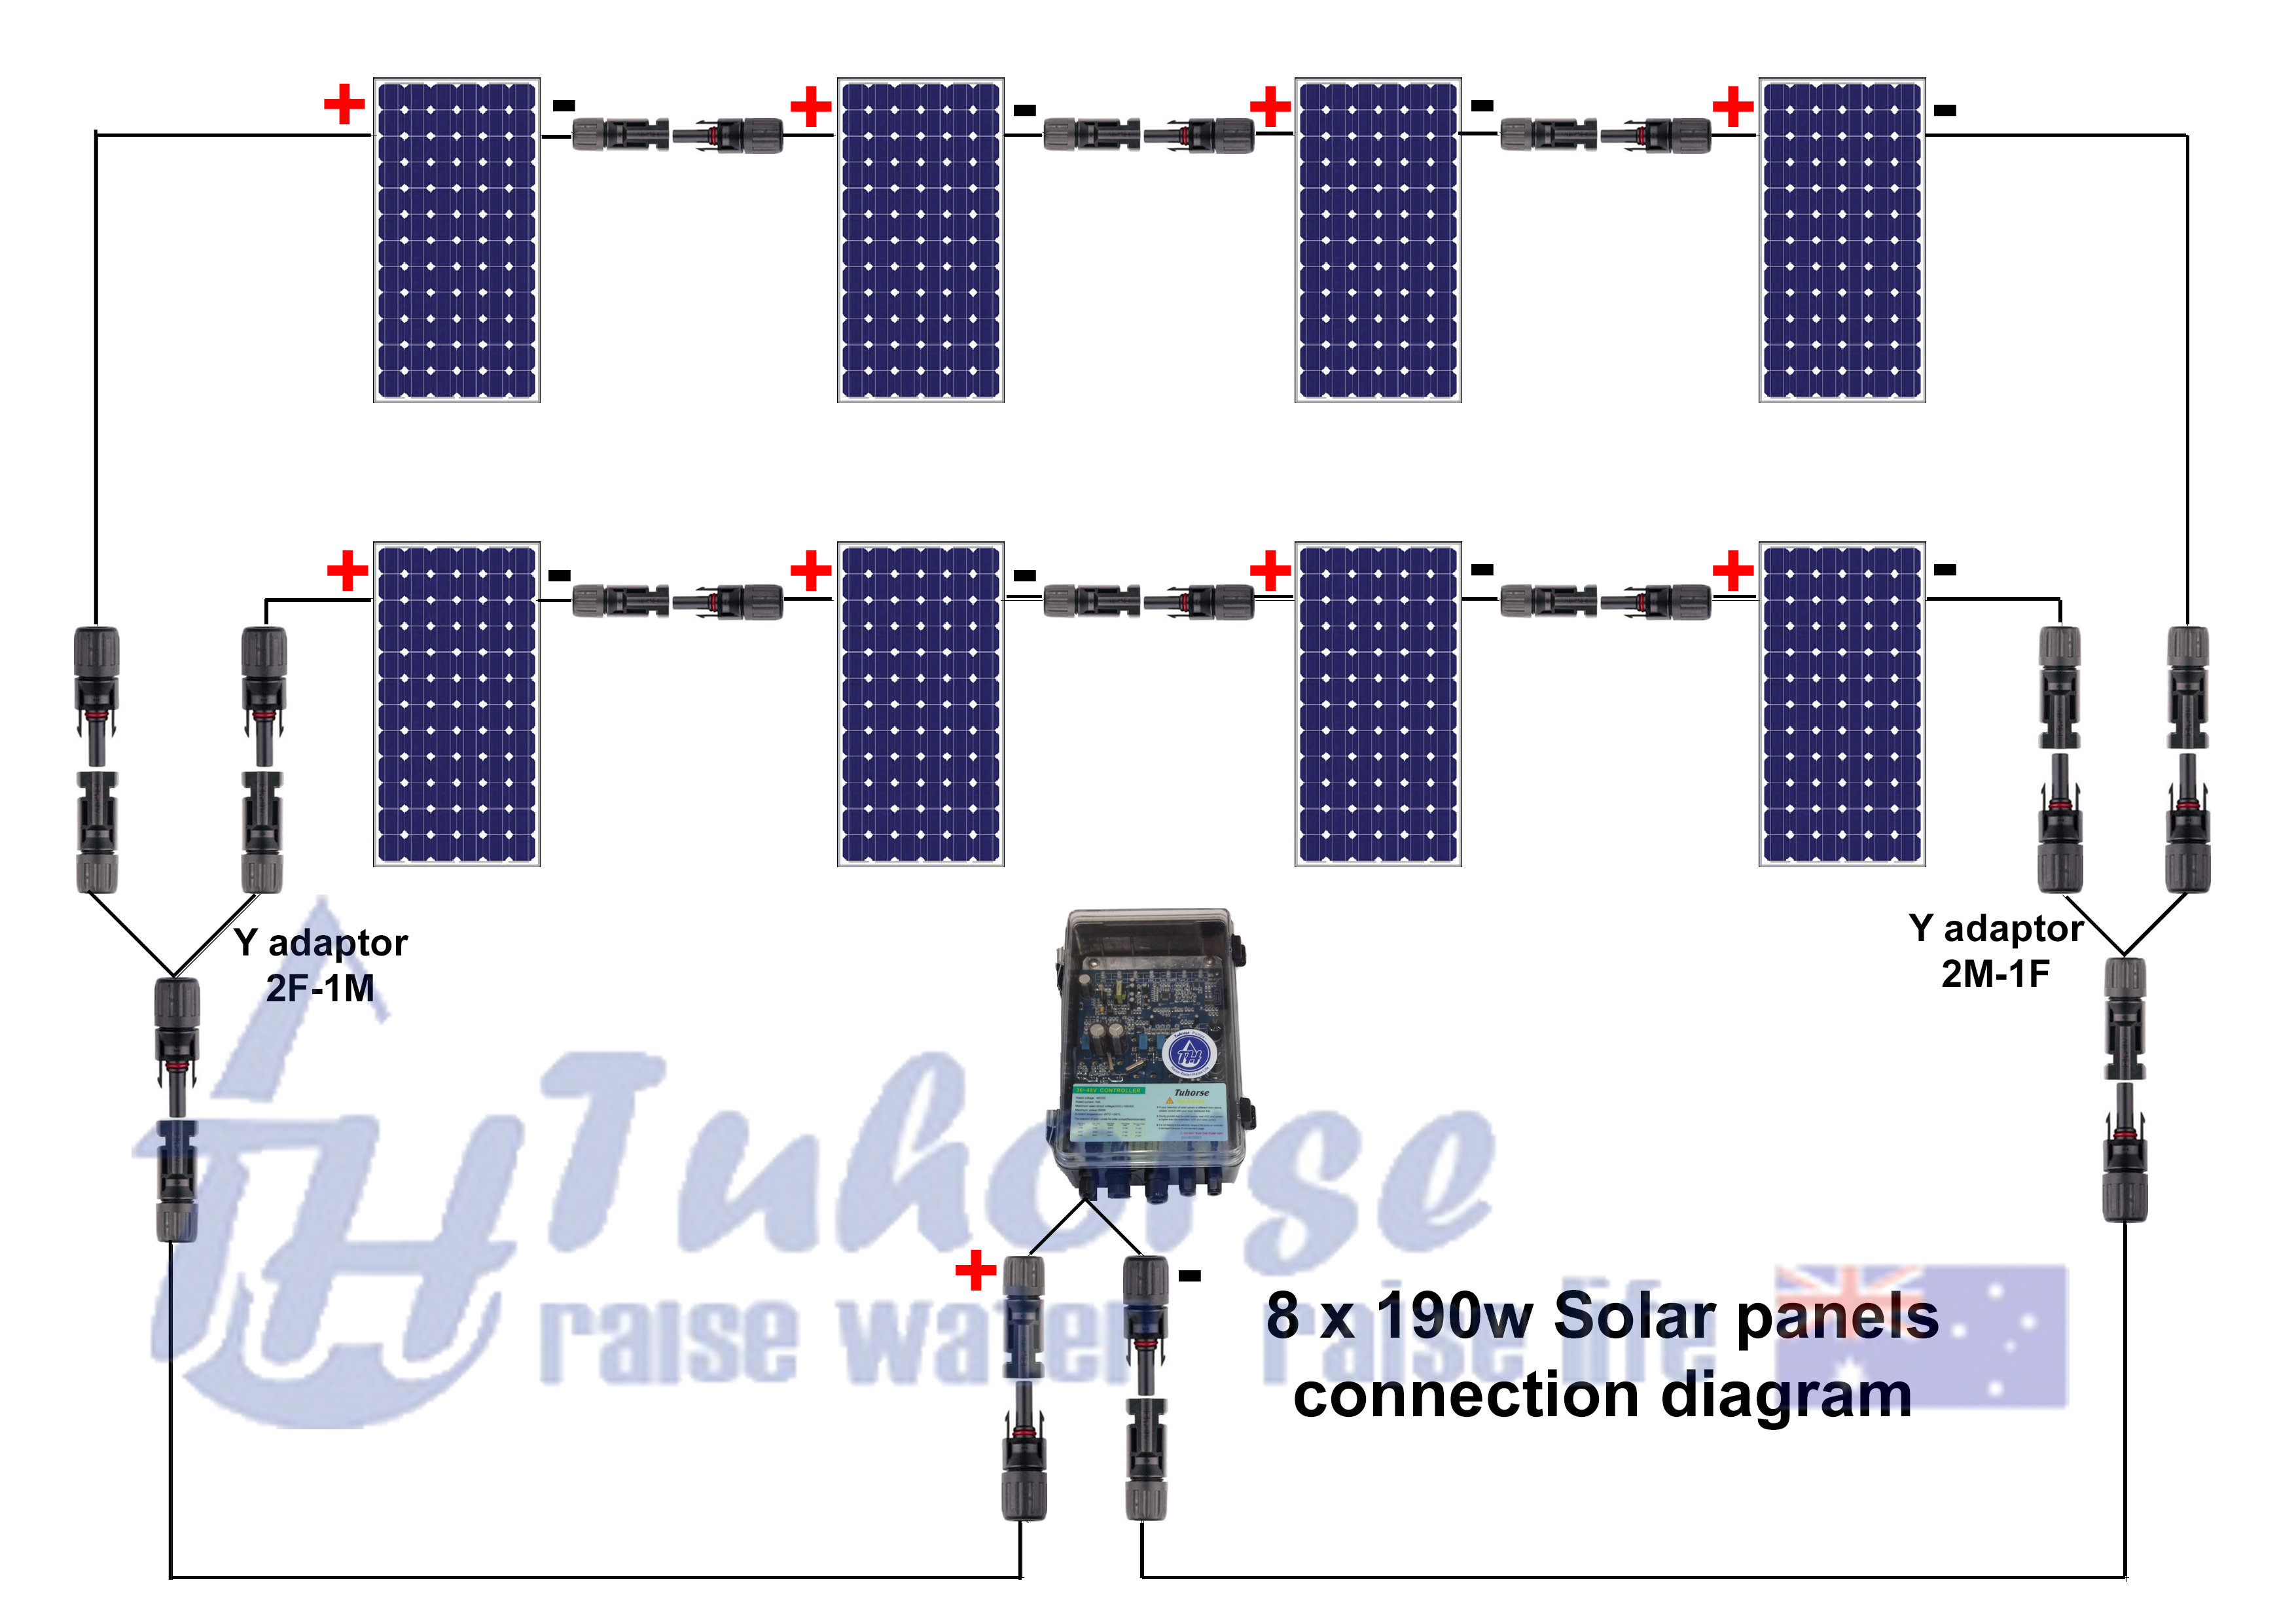 manuals curves panels connection diagrams and how to change screw rotor 8 solar panels [ 3508 x 2480 Pixel ]